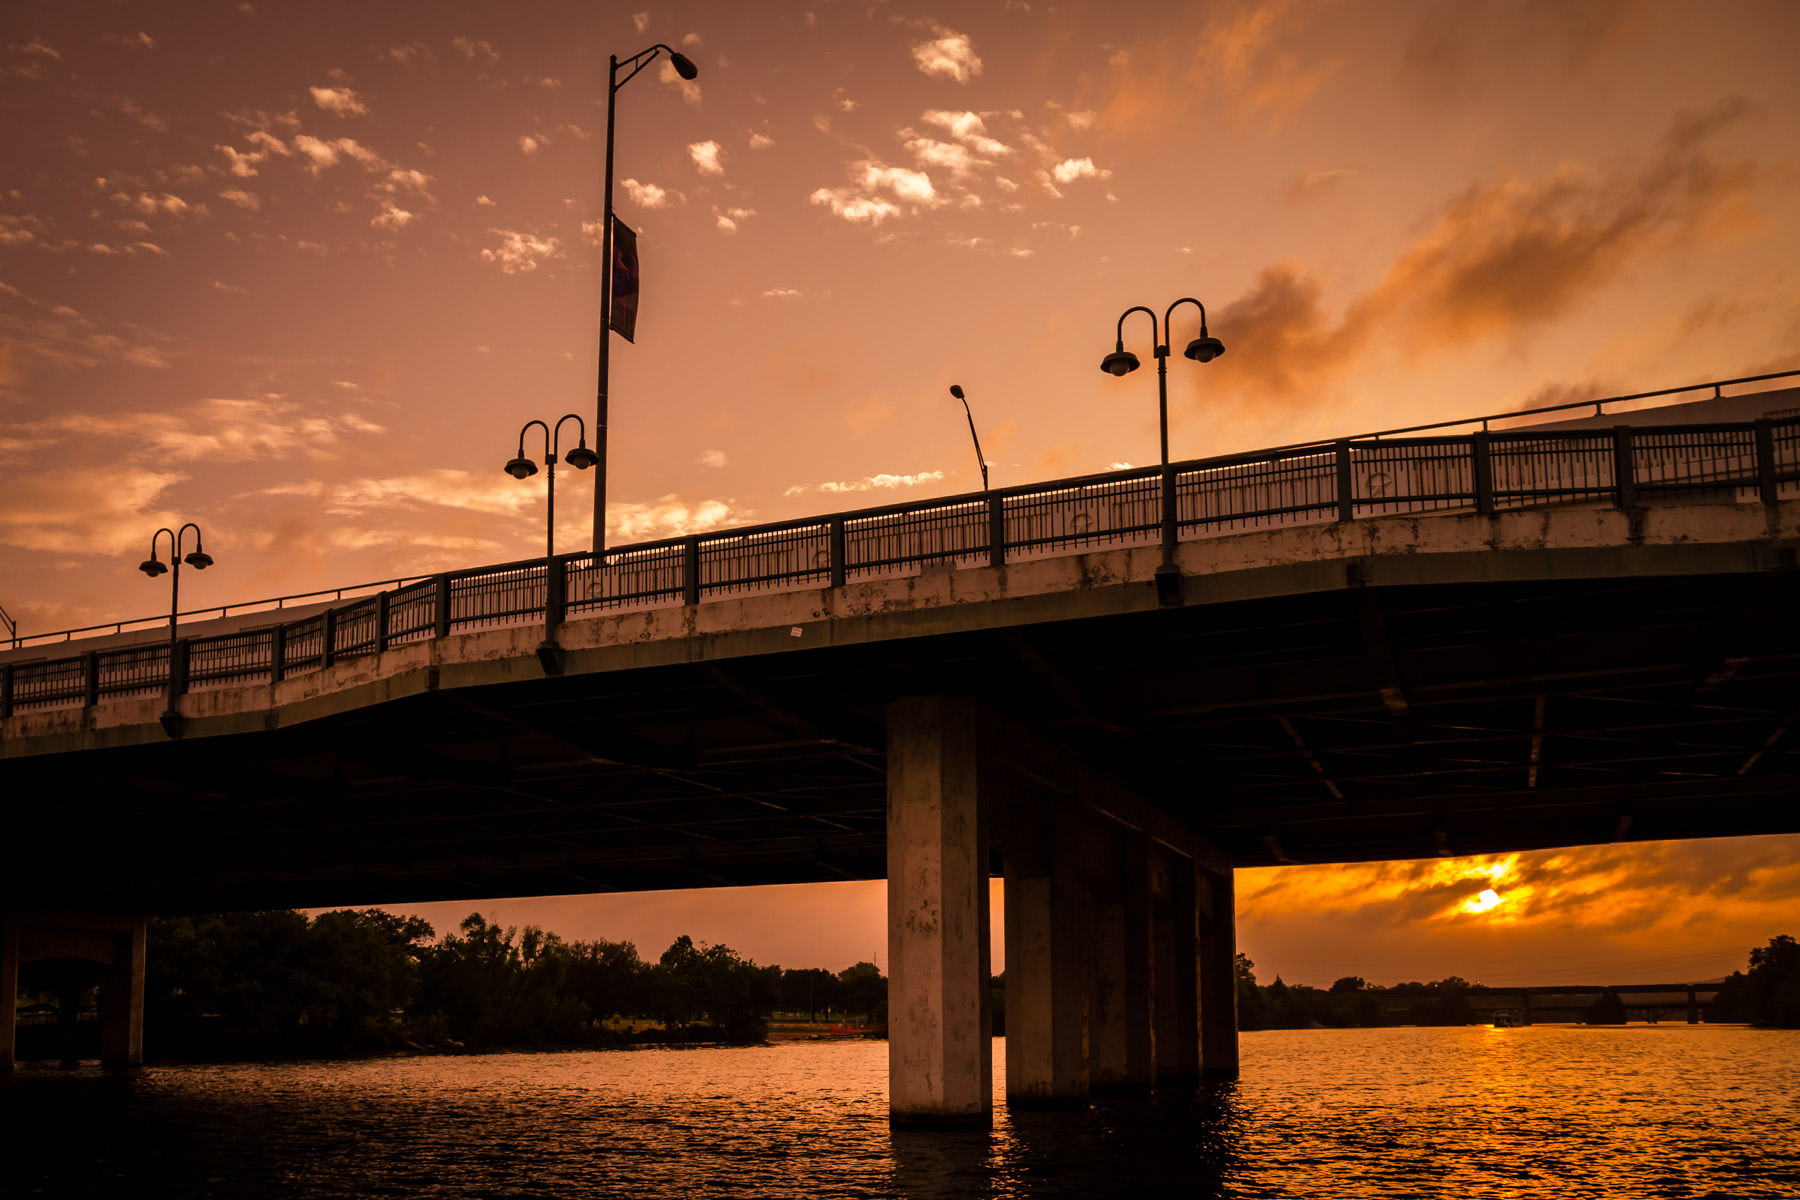 The sun sets on Austin's South First Street Bridge as it spans Lady Bird Lake.